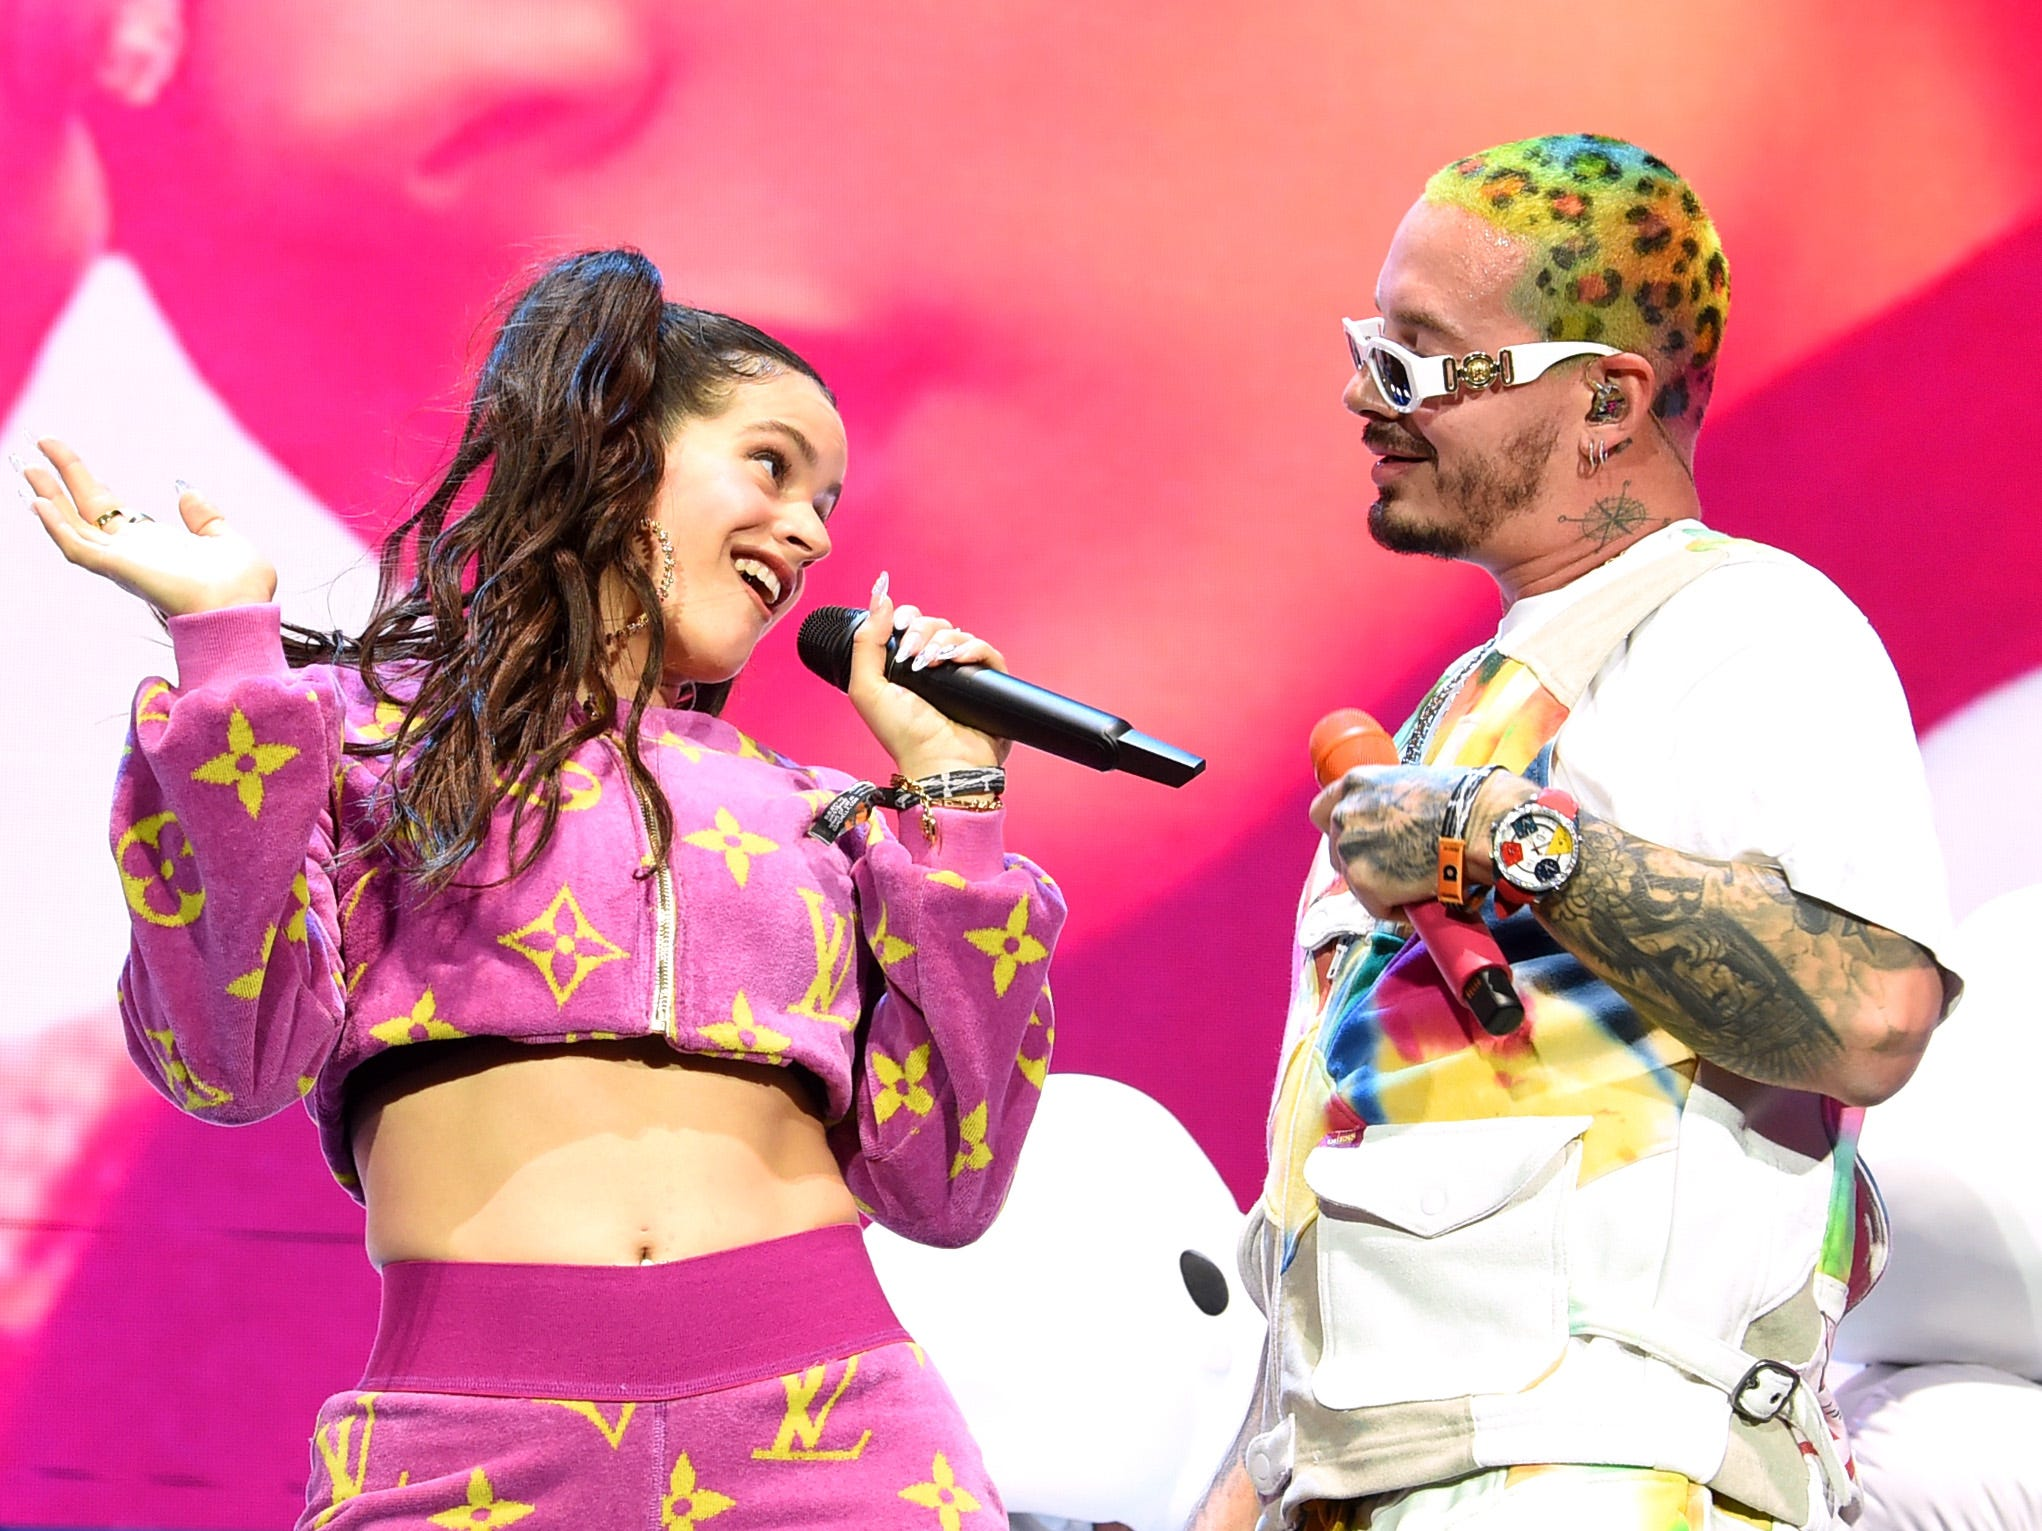 INDIO, CA - APRIL 13:  Rosalia and J Balvin perform at Coachella Stage during the 2019 Coachella Valley Music And Arts Festival on April 13, 2019 in Indio, California.  (Photo by Kevin Winter/Getty Images for Coachella) ORG XMIT: 775277732 ORIG FILE ID: 1137210165